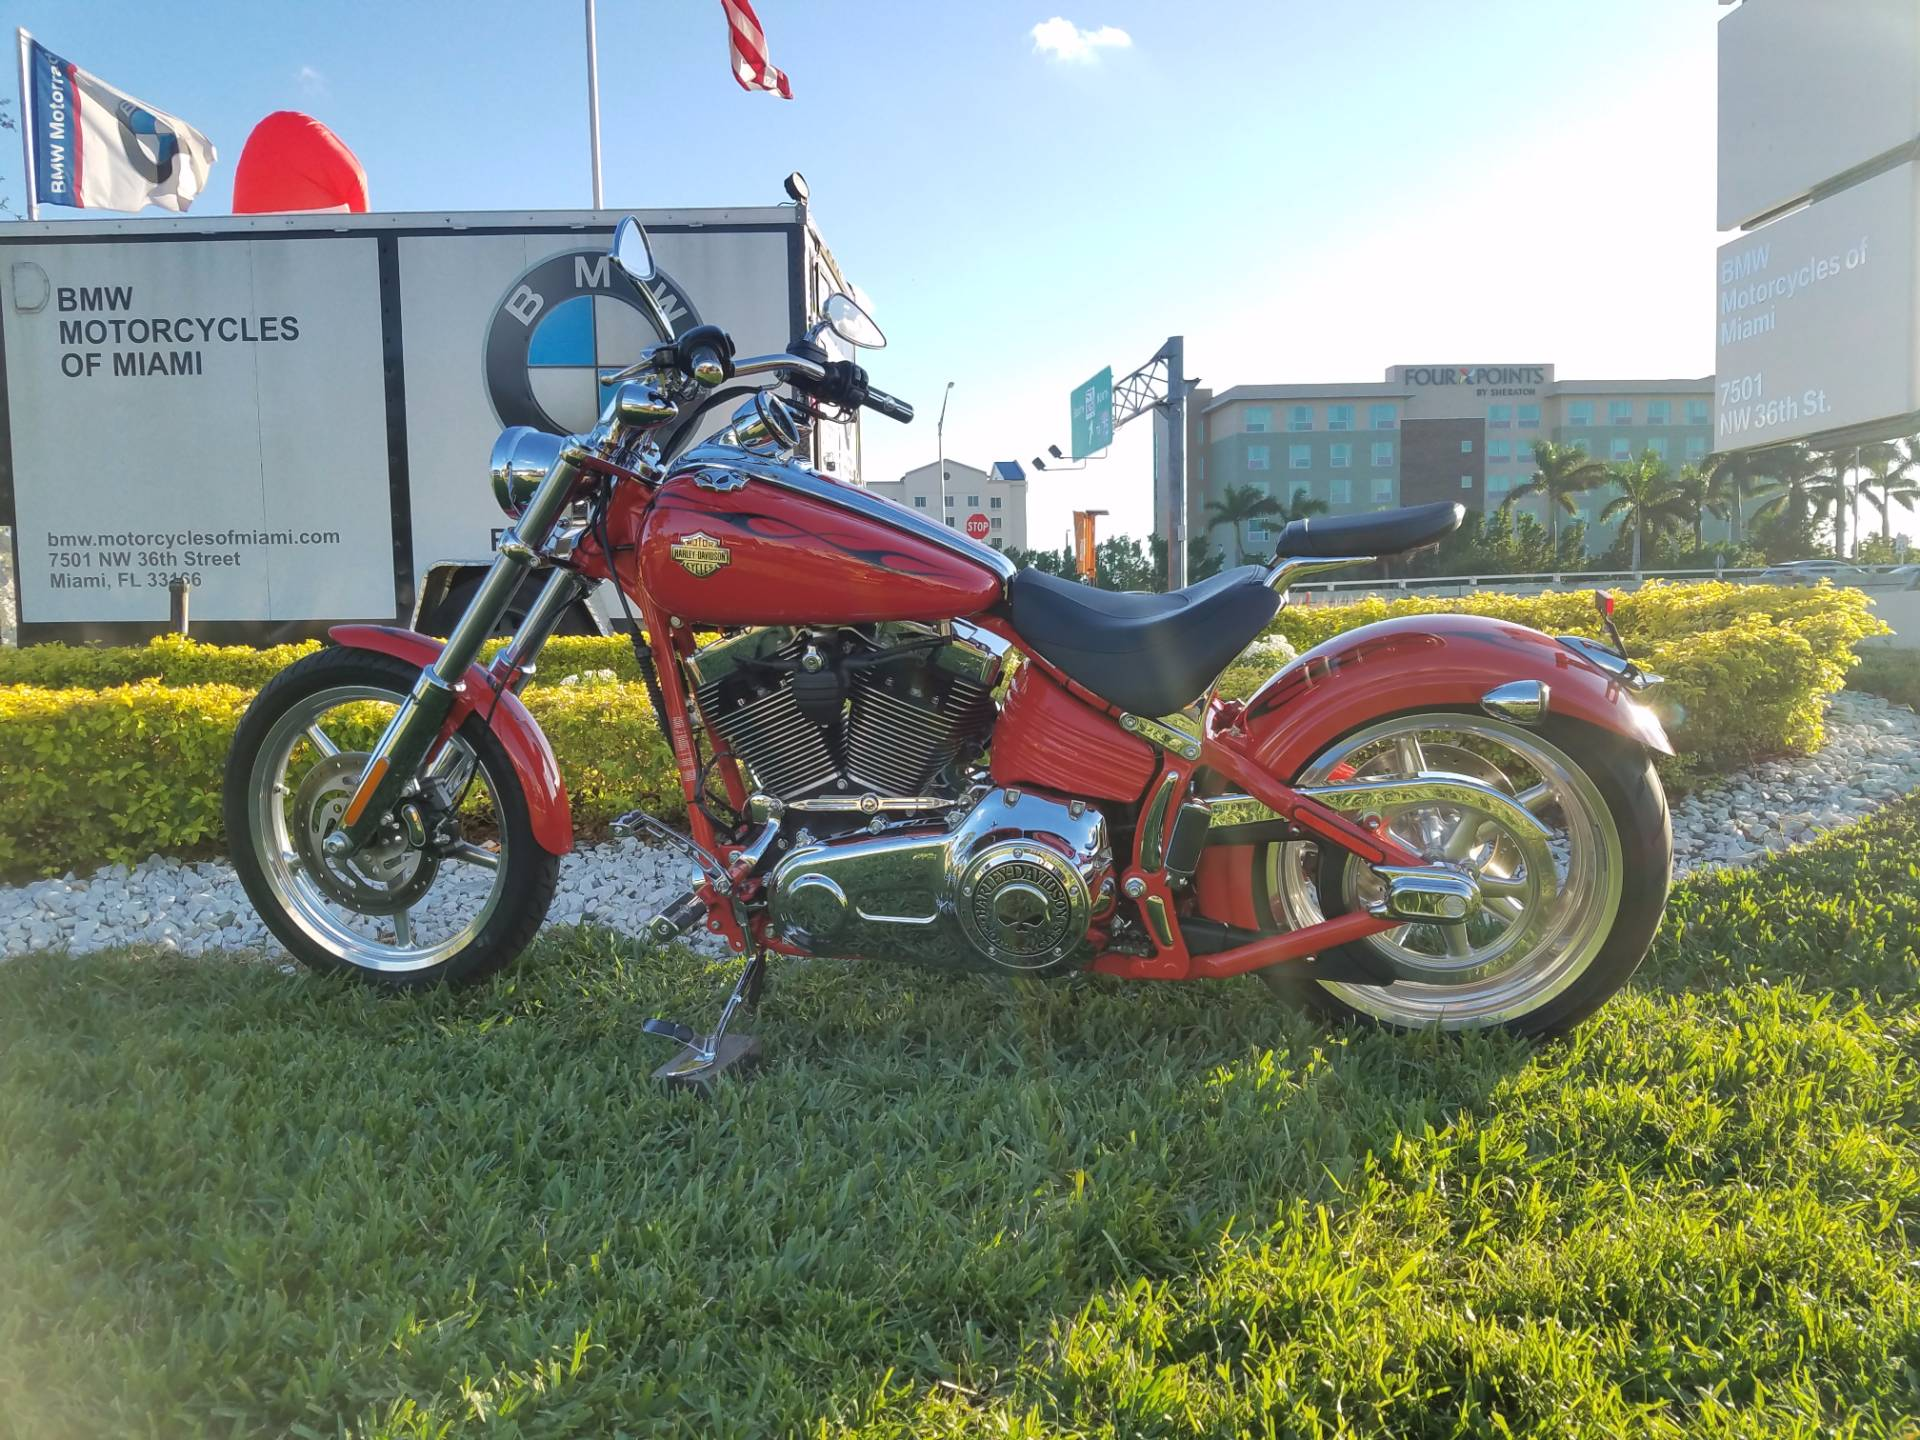 Used 2011 Harley Davidson Soft Tail For Sale, HD Soft Tail 11, pre-Owned Soft Tail, Used Harley Davidson